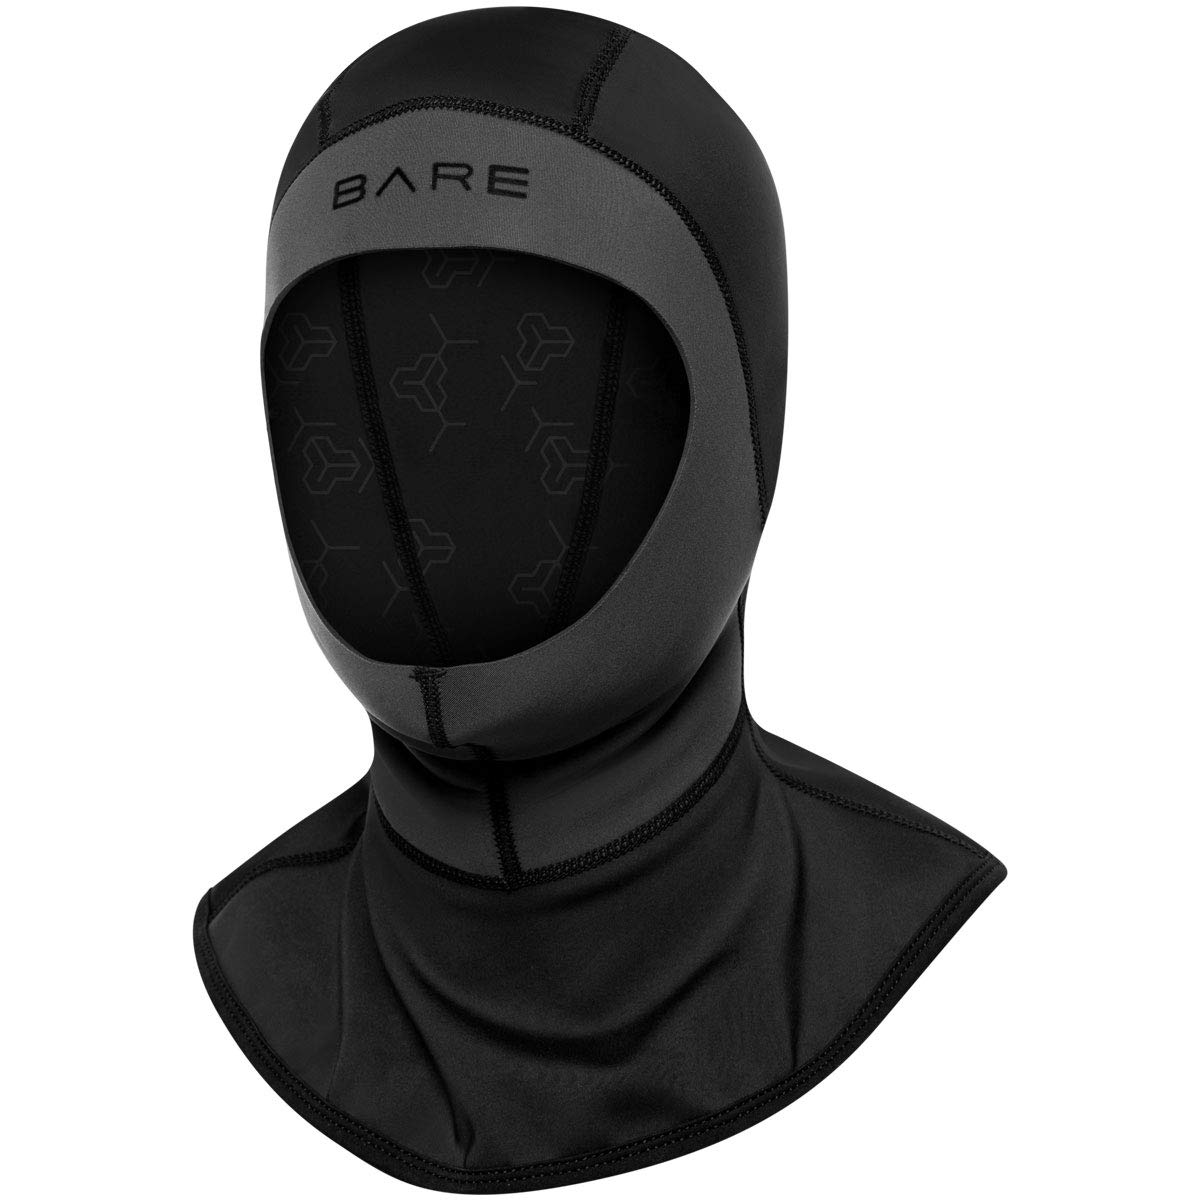 Bare Exowear Hood Wet/Dry Undergarment (2X Large) by Bare